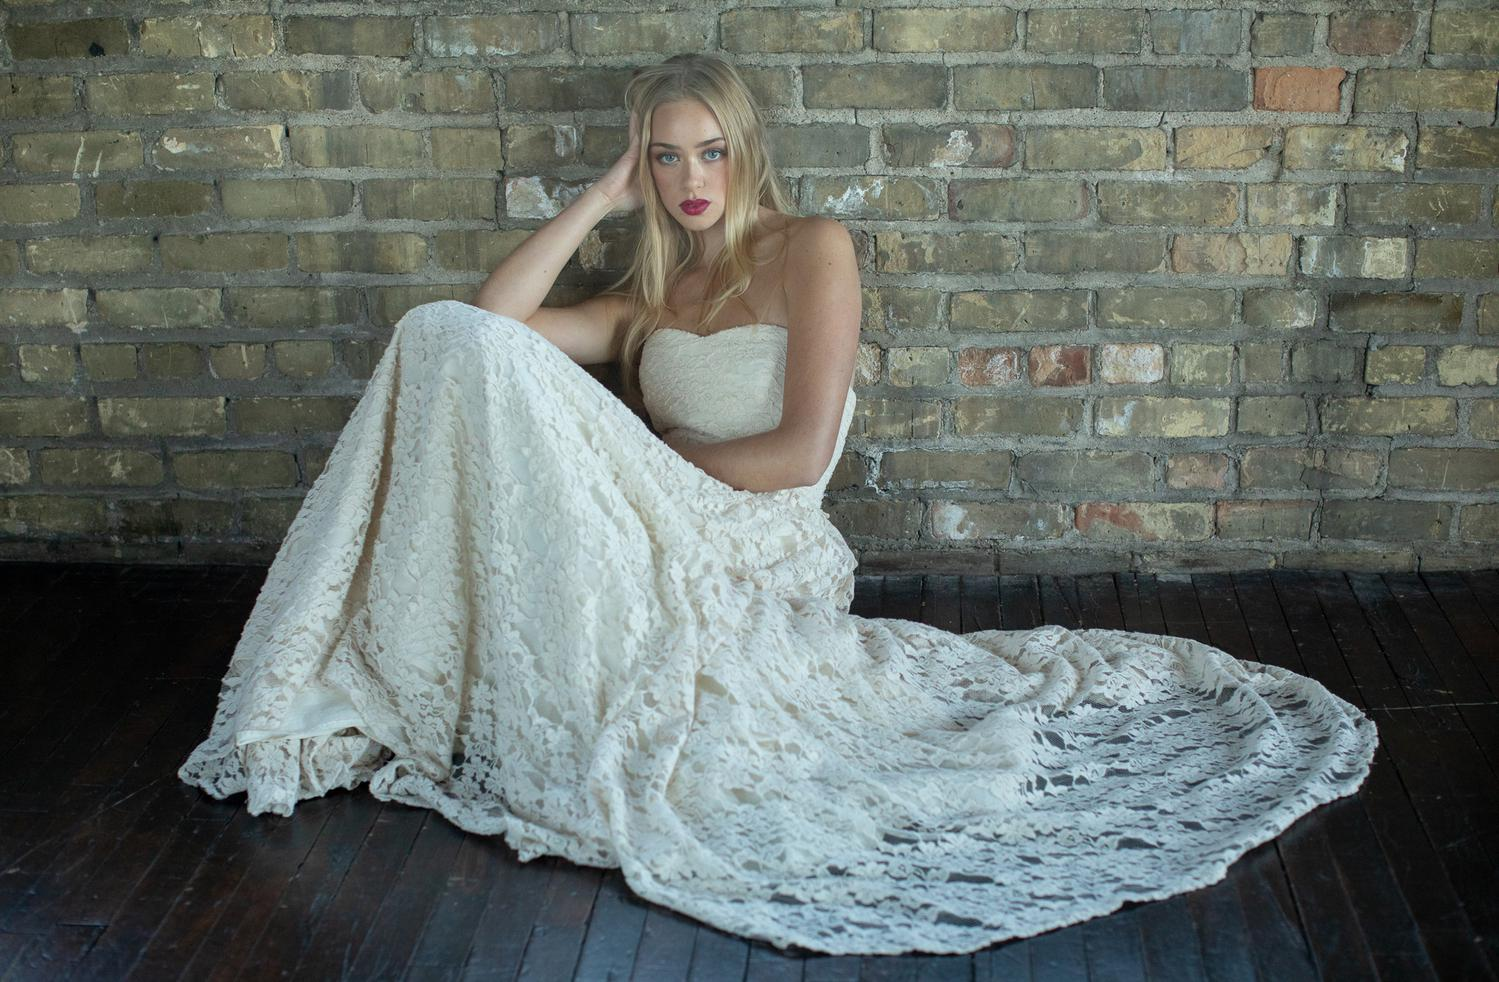 Eco Friendly And Vintage Bridal Gowns At Sienna Cole Twin